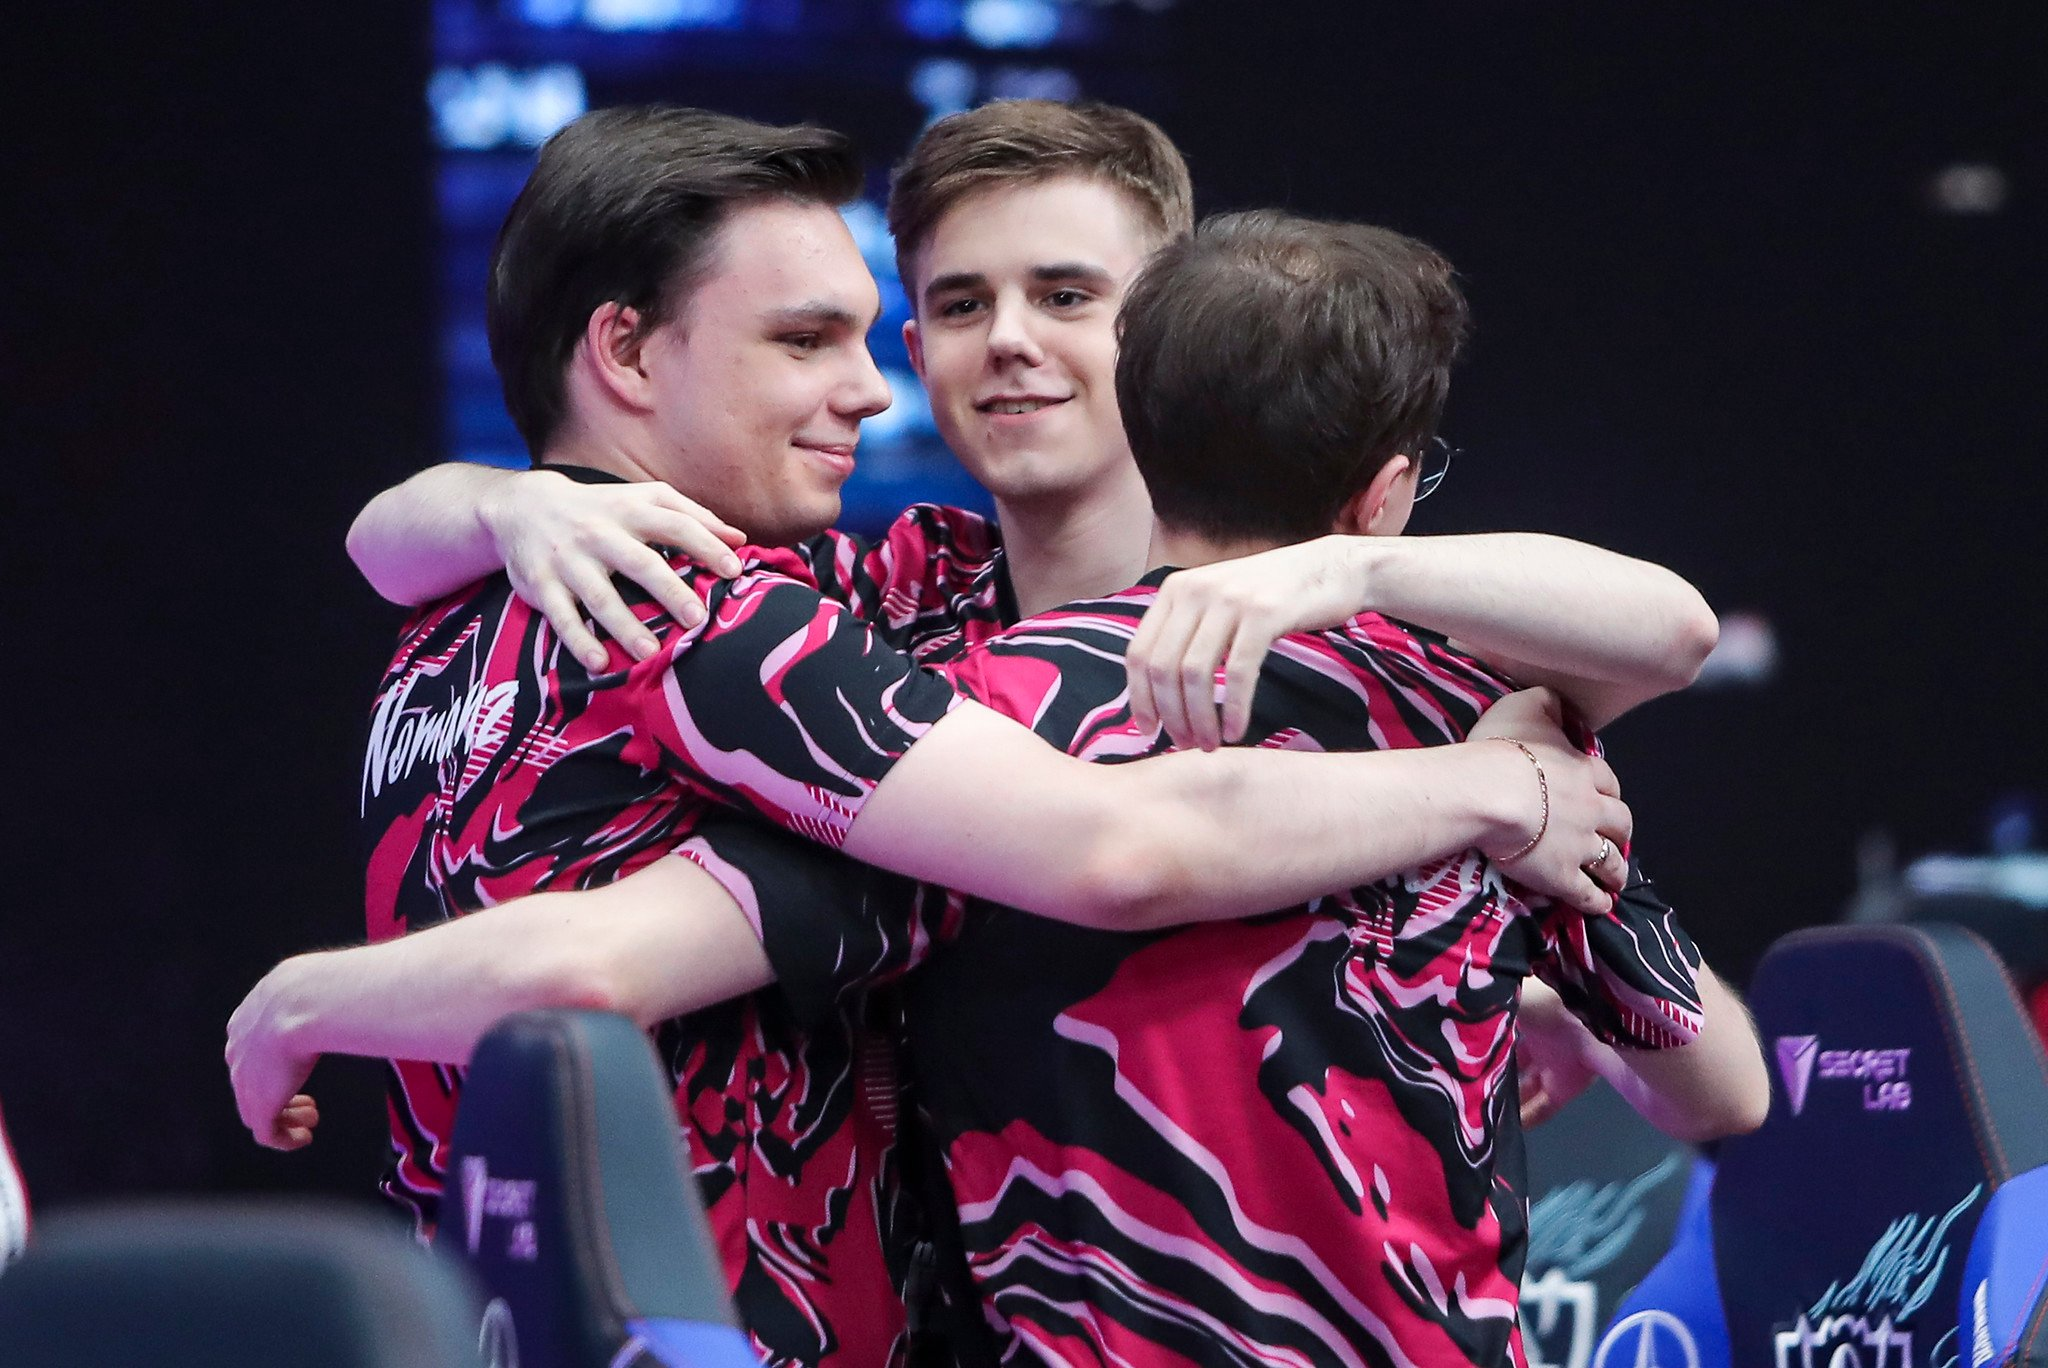 Unicorns Of Love – A Brief History Of The Dominant League Continental League Team In CIS 2020